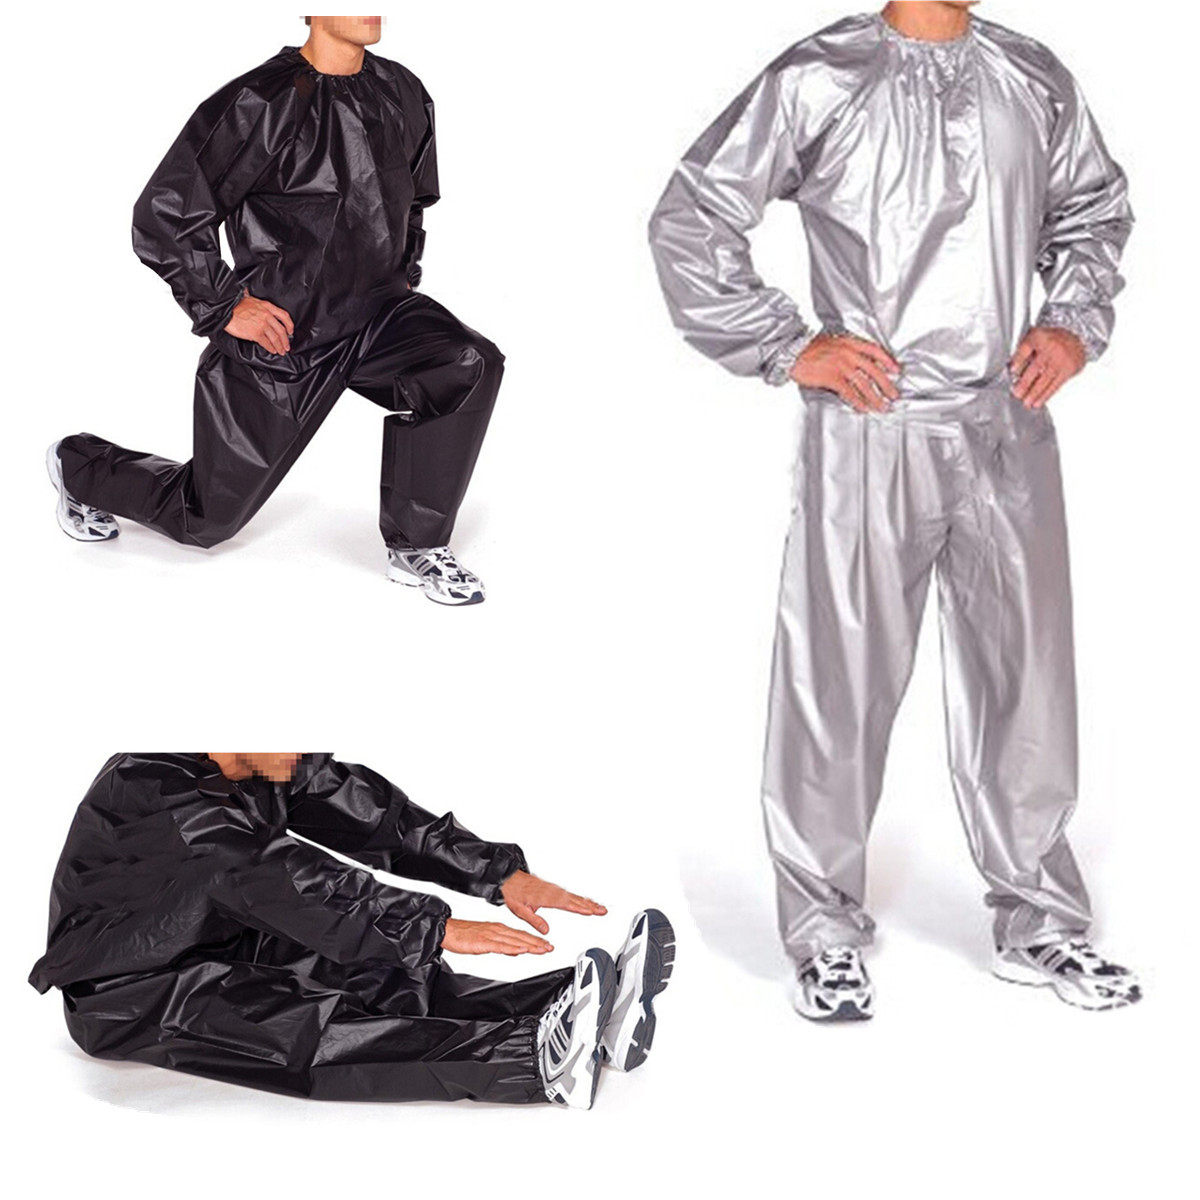 100% PVC Heavy Duty Unisex Fitness Loss Weight Sweat Suit Sauna Yoga Stretch Workout Suit Exercise Gym 5 Sizes